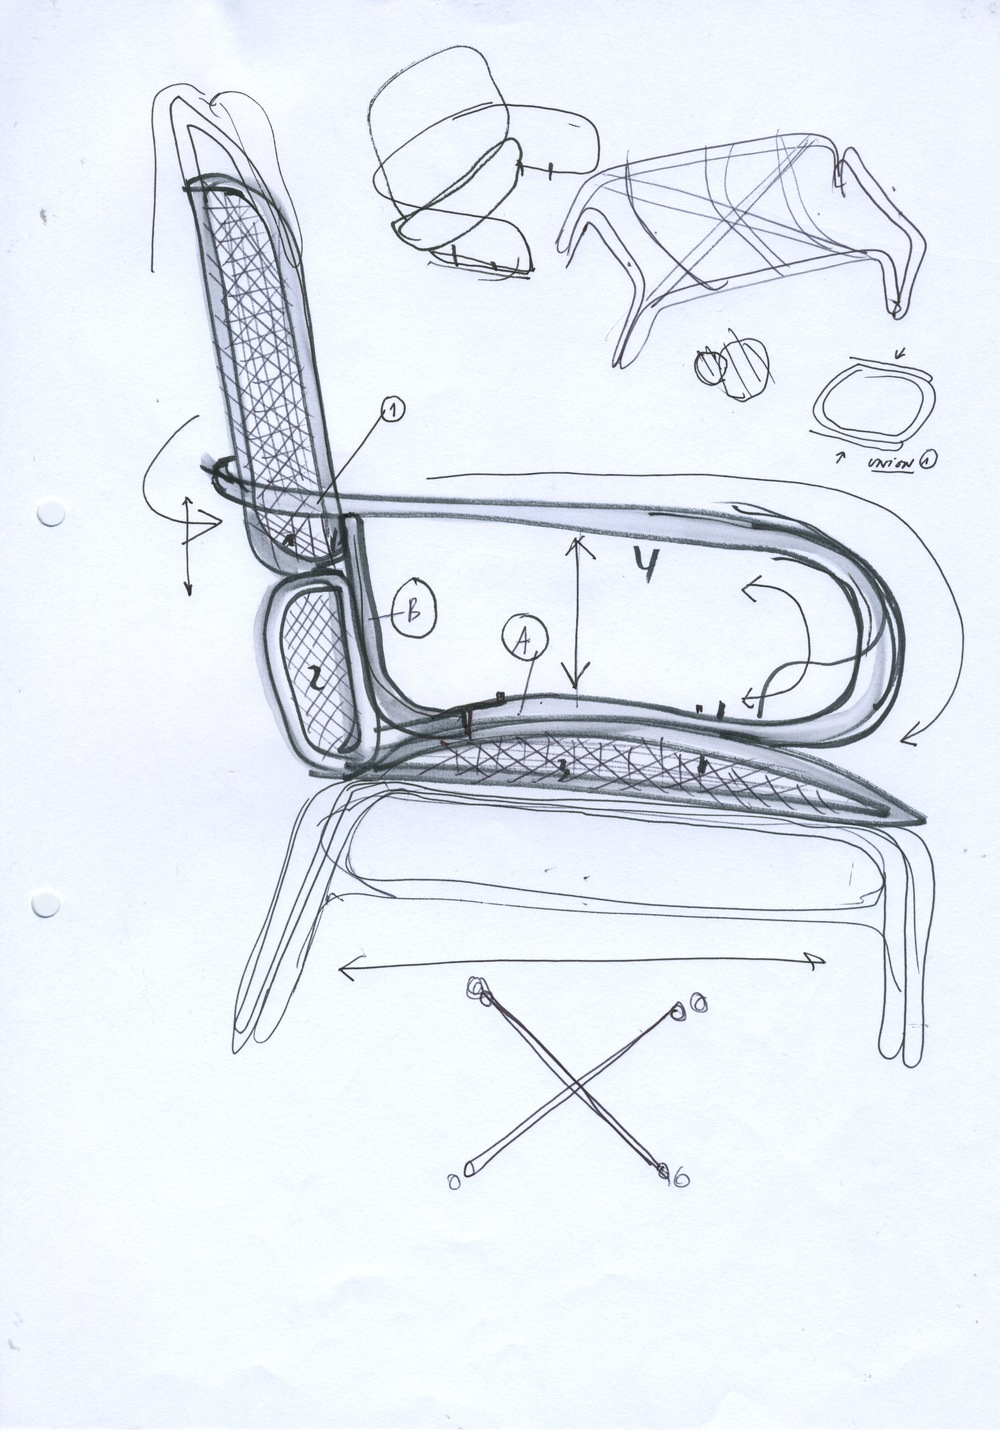 Jaime Hayon's sketch for his new 'Frames' armchair for Spanish brand, Expormim. Expormim specialise in bent rattan.